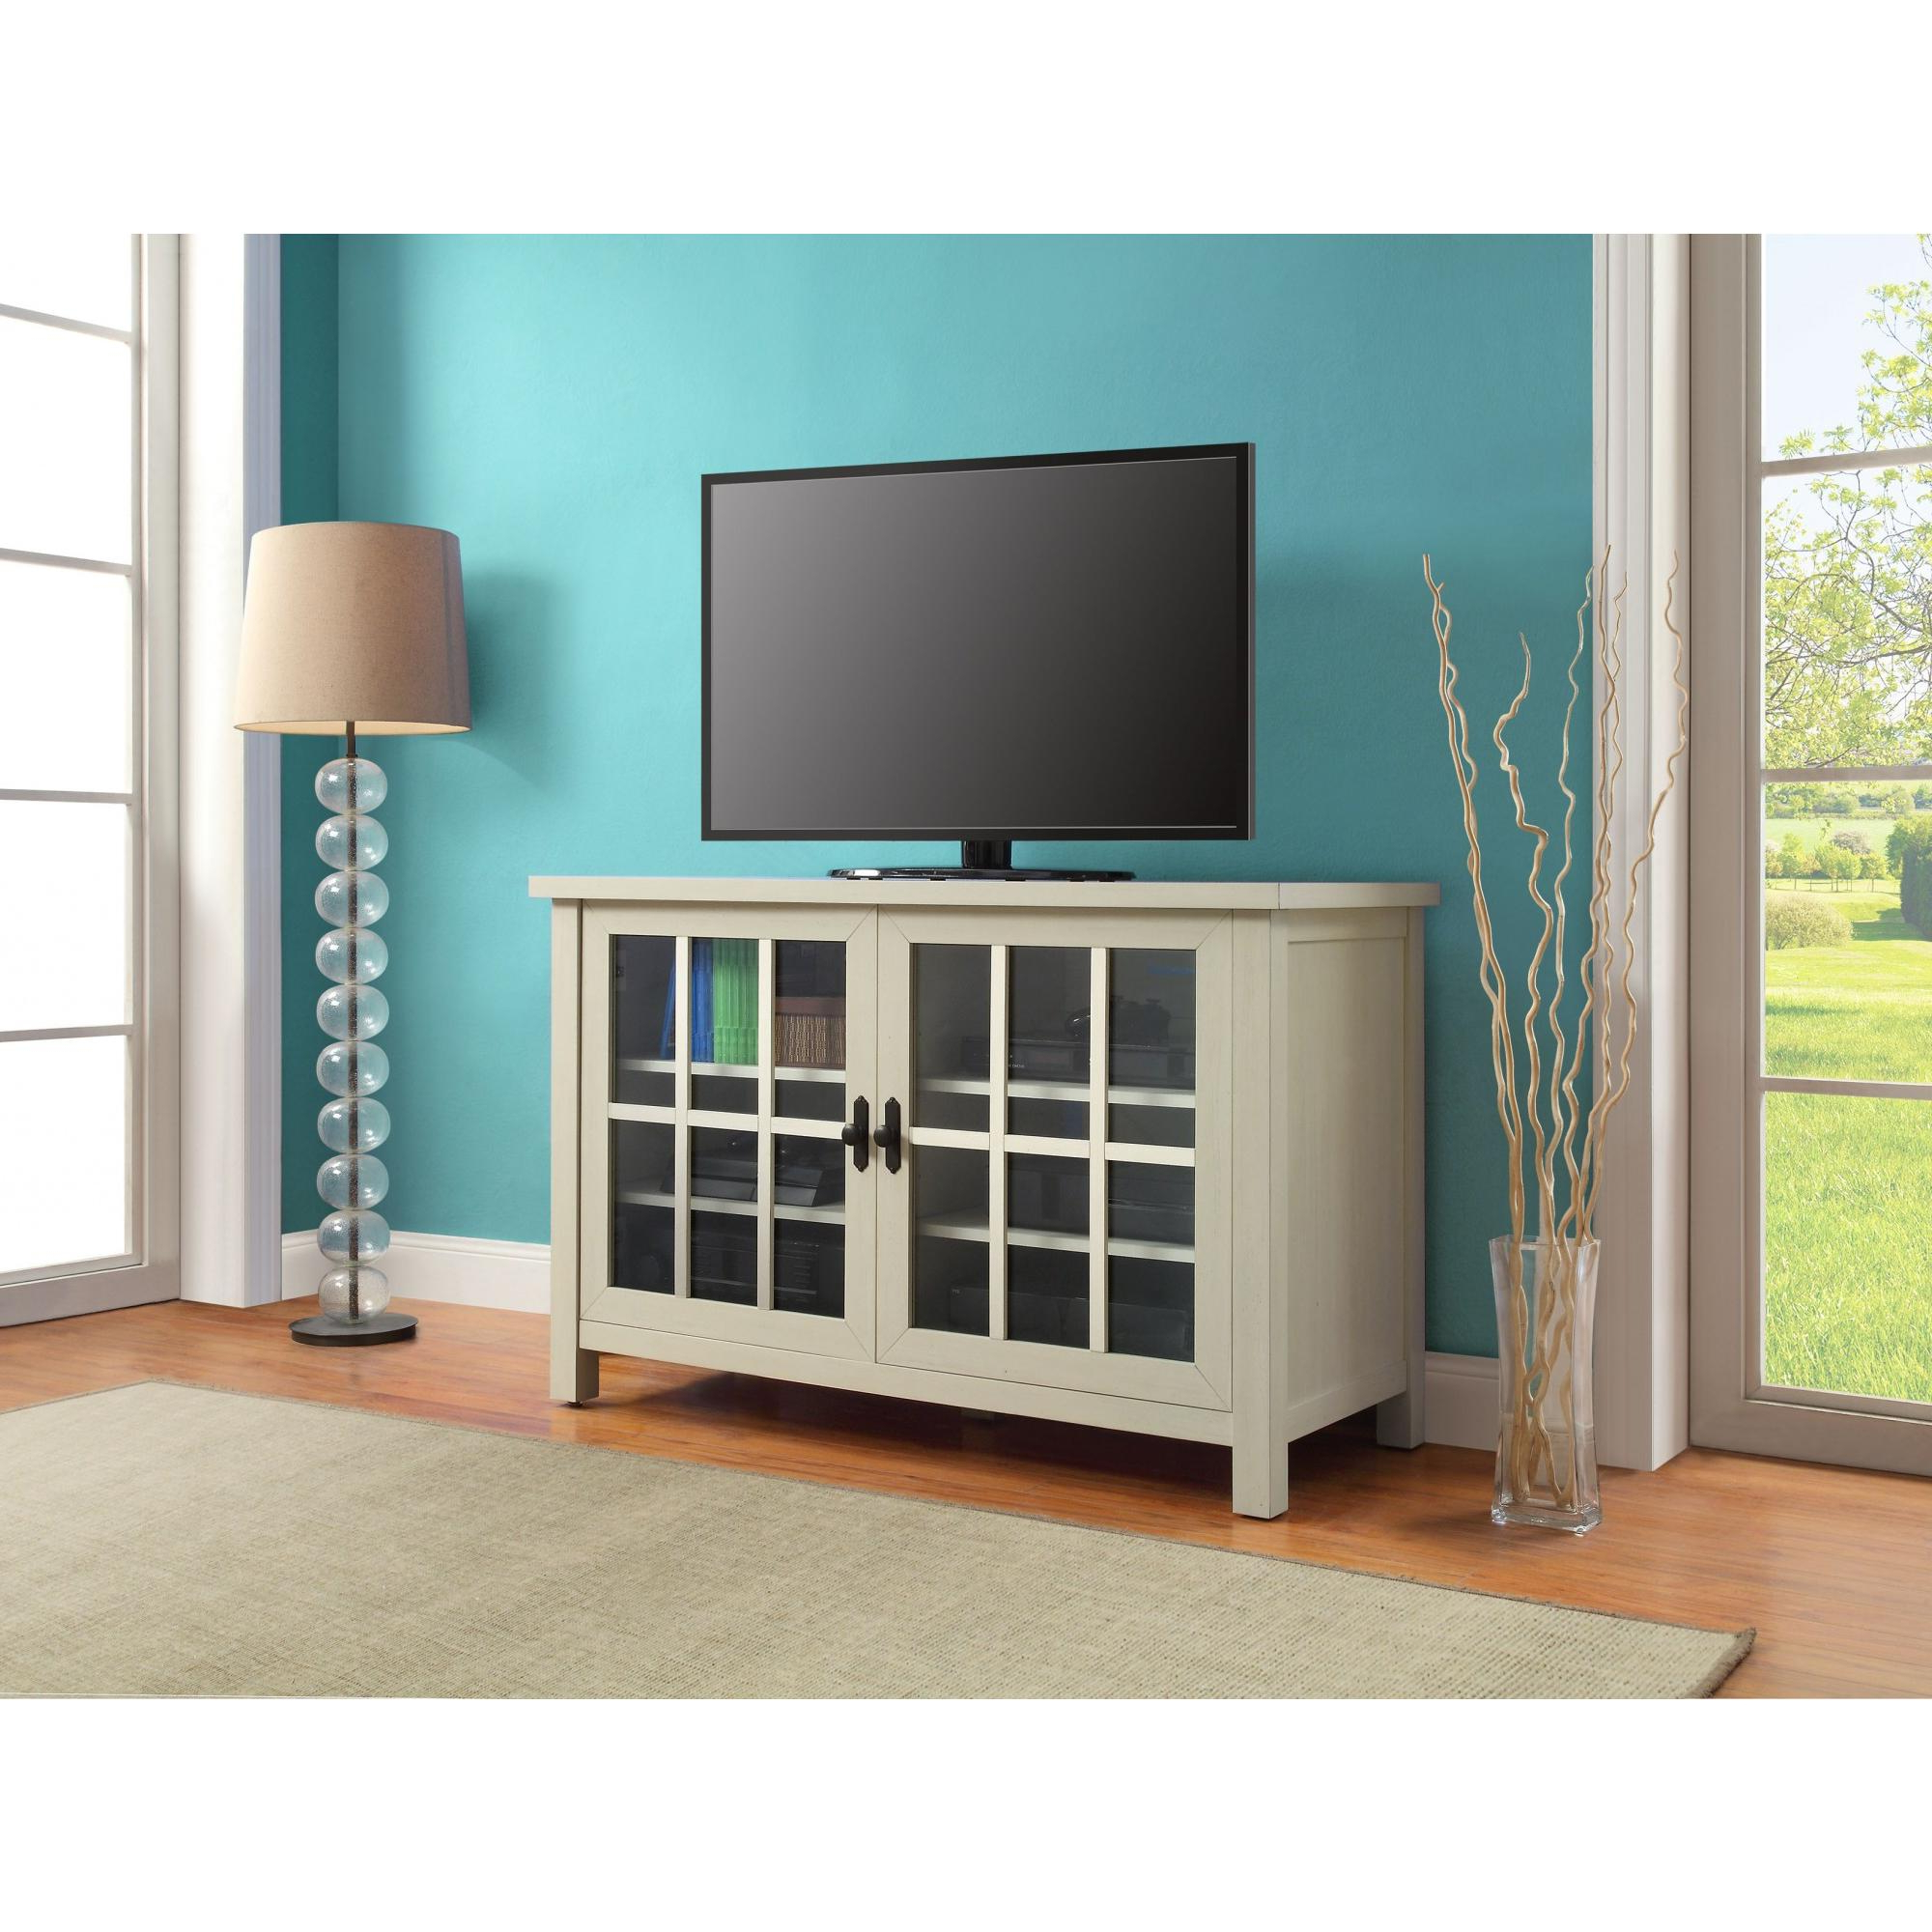 2018 Better Homes And Gardens Oxford Square Tv Console For Tvs Up To 55 Pertaining To Oxford 60 Inch Tv Stands (Gallery 9 of 20)